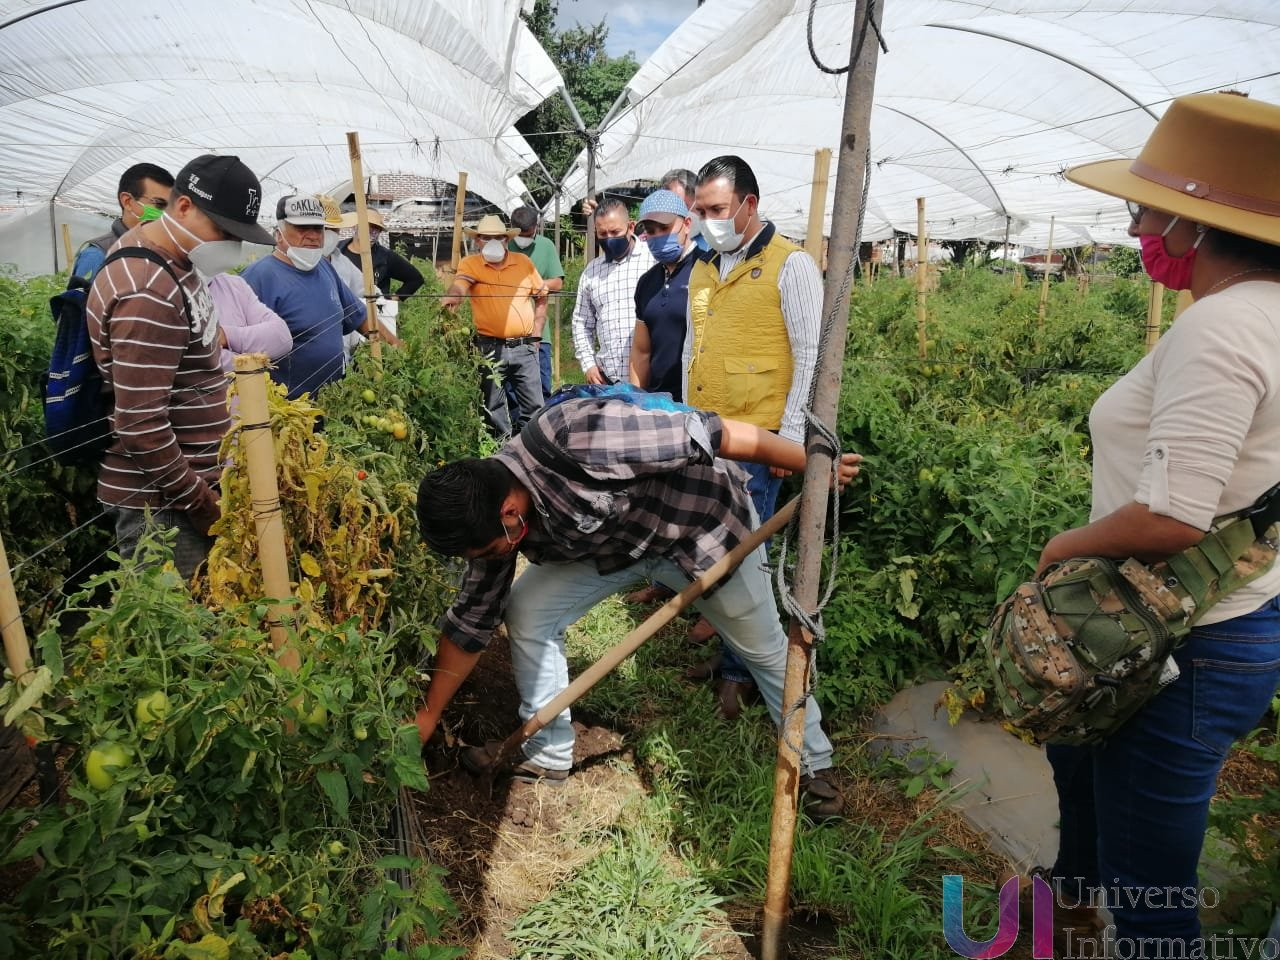 Agricultura Sustentable, convence a productores de jitomate en Huandacareo